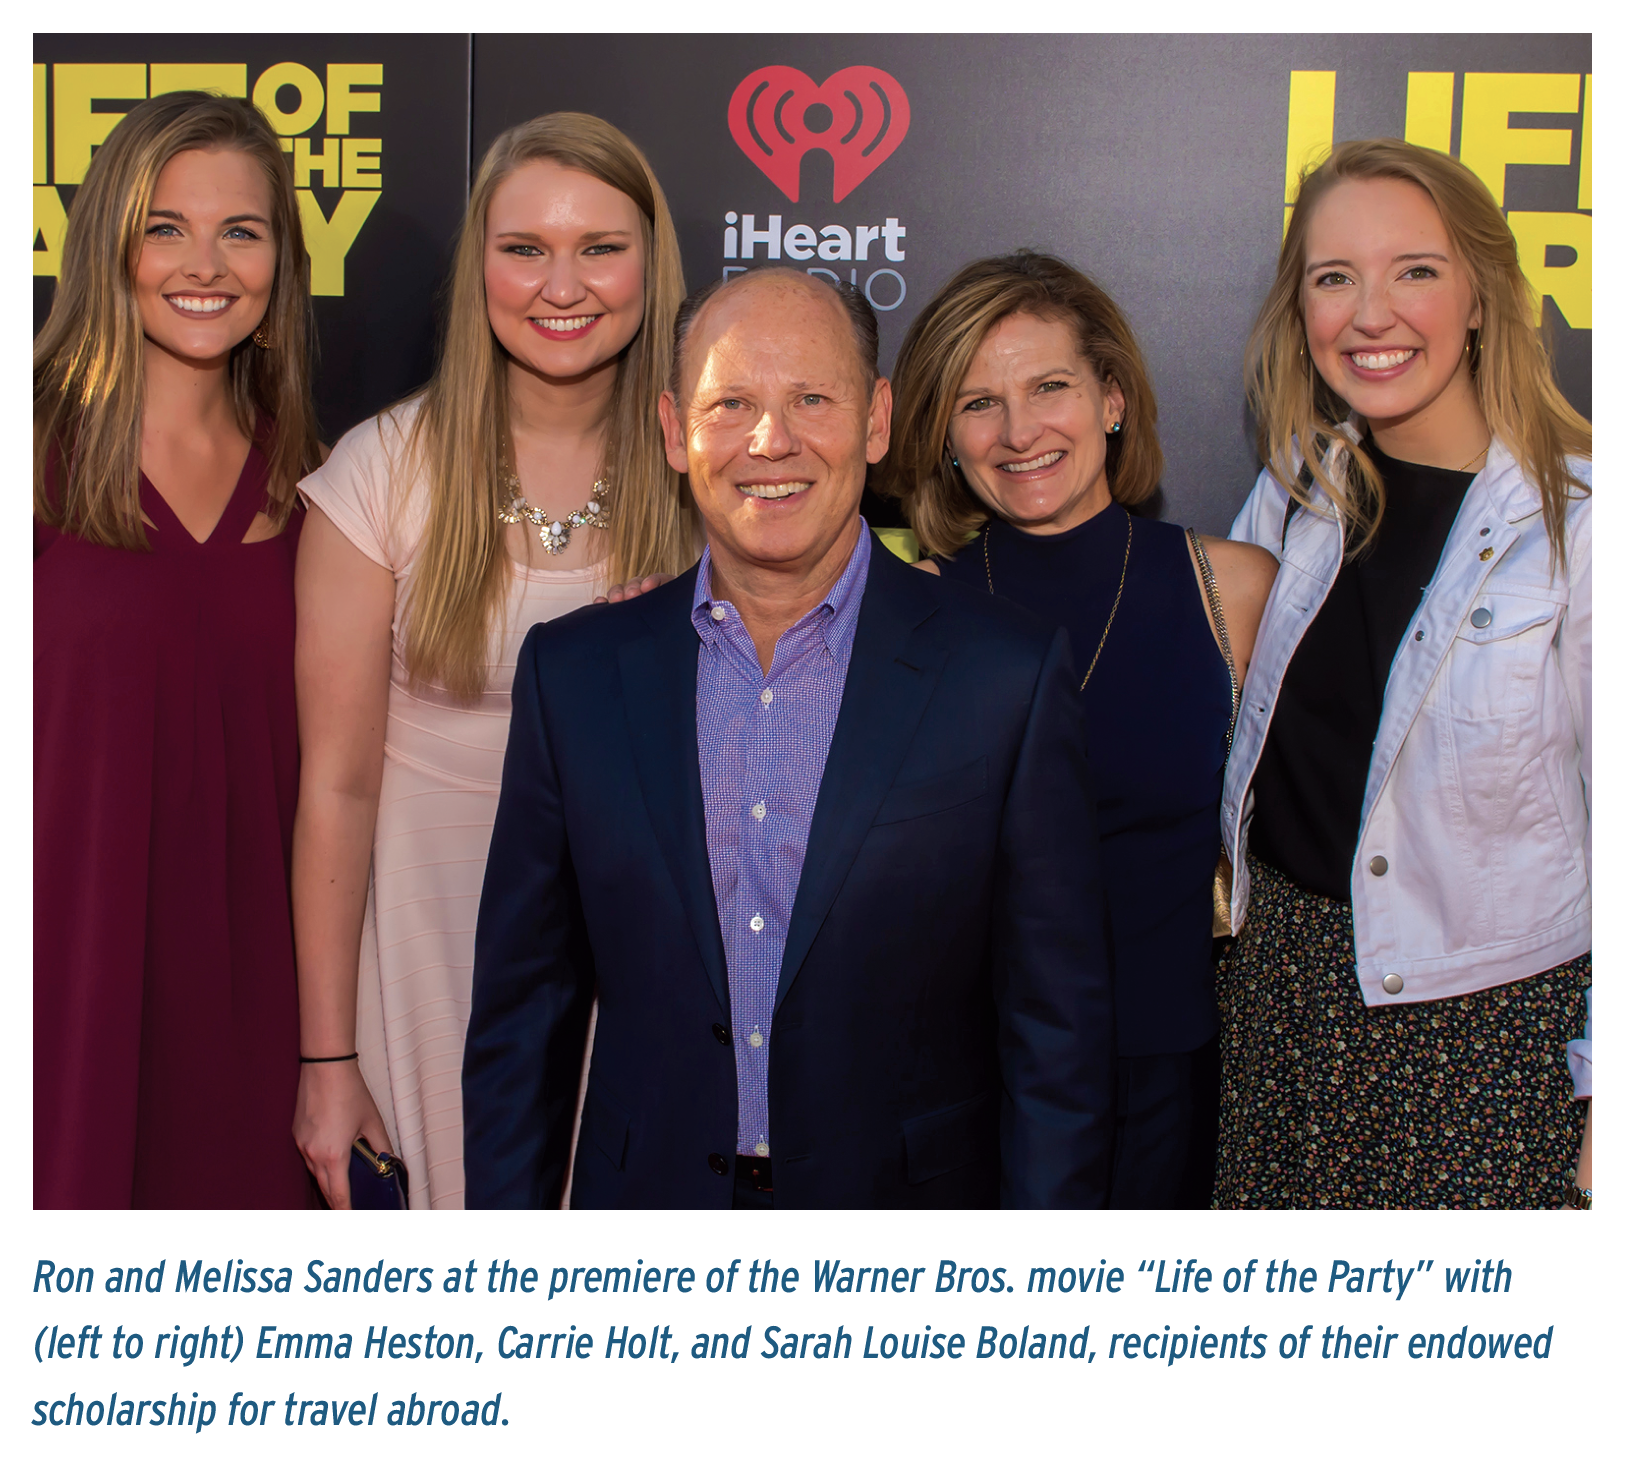 "Ron and Melissa Sanders at the premiere of the Warner Bros. movie ""Life of the Party"" with (left to right) Emma Heston, Carrie Holt, and Sarah Louise Boland, recipients of their endowed scholarship for travel abroad."